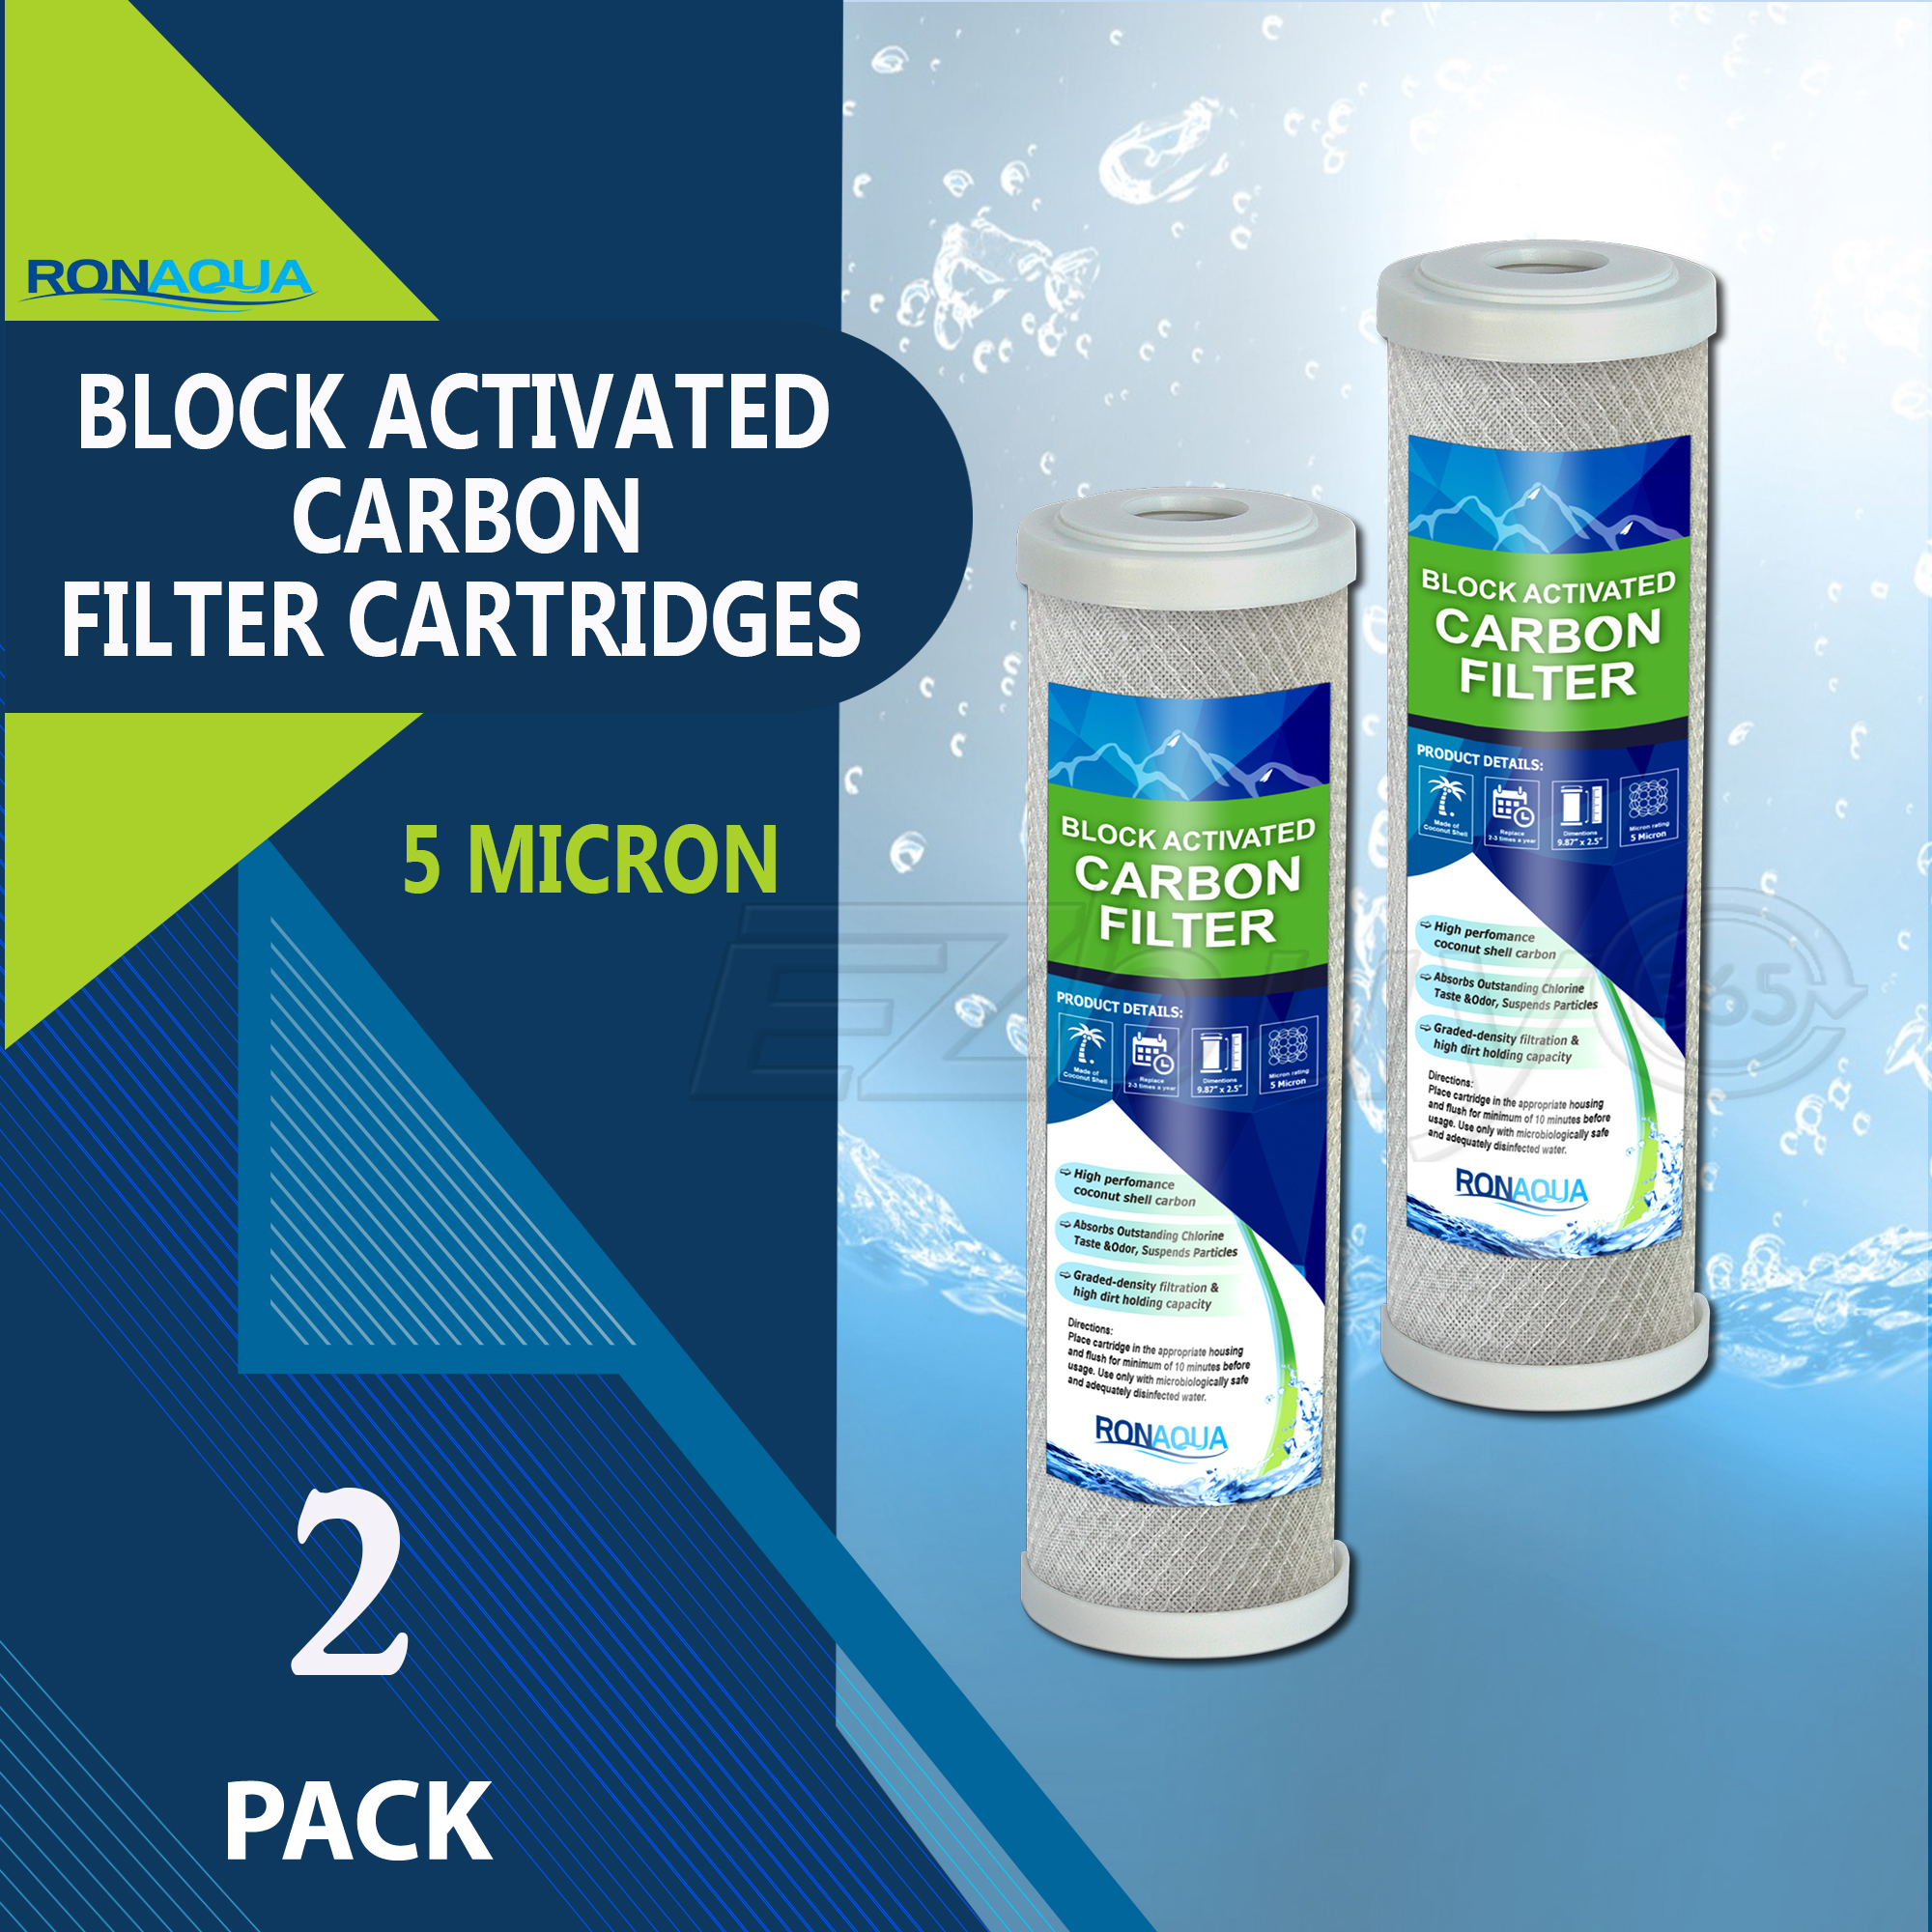 "Block Activated Carbon Coconut Shell Water Filter Cartridge 5 Micron for RO & Standard 10"" Housing by Ronaqua (2 Pack)"